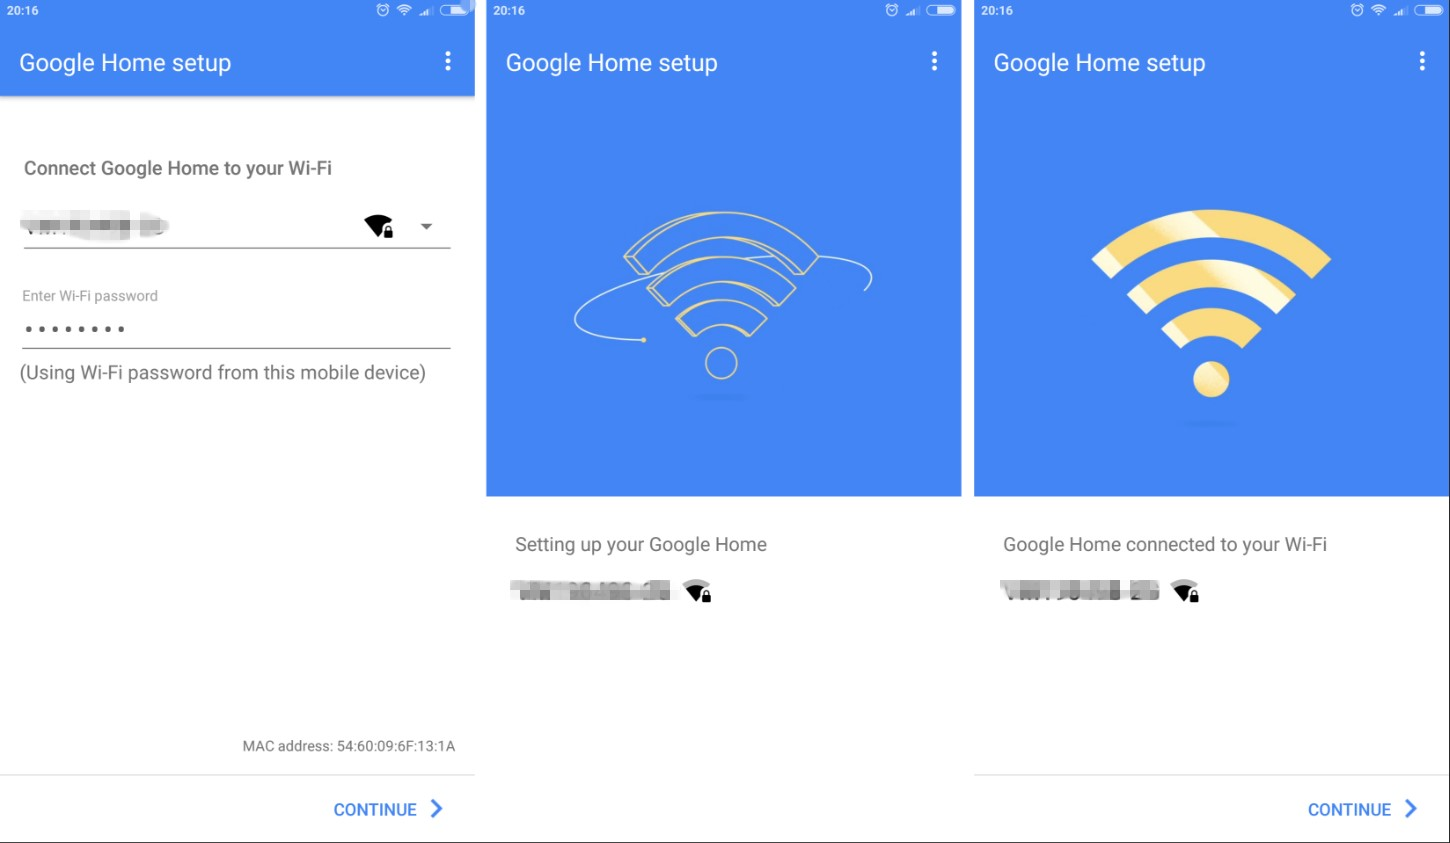 How to connect Google Home to the Wi-Fi net work